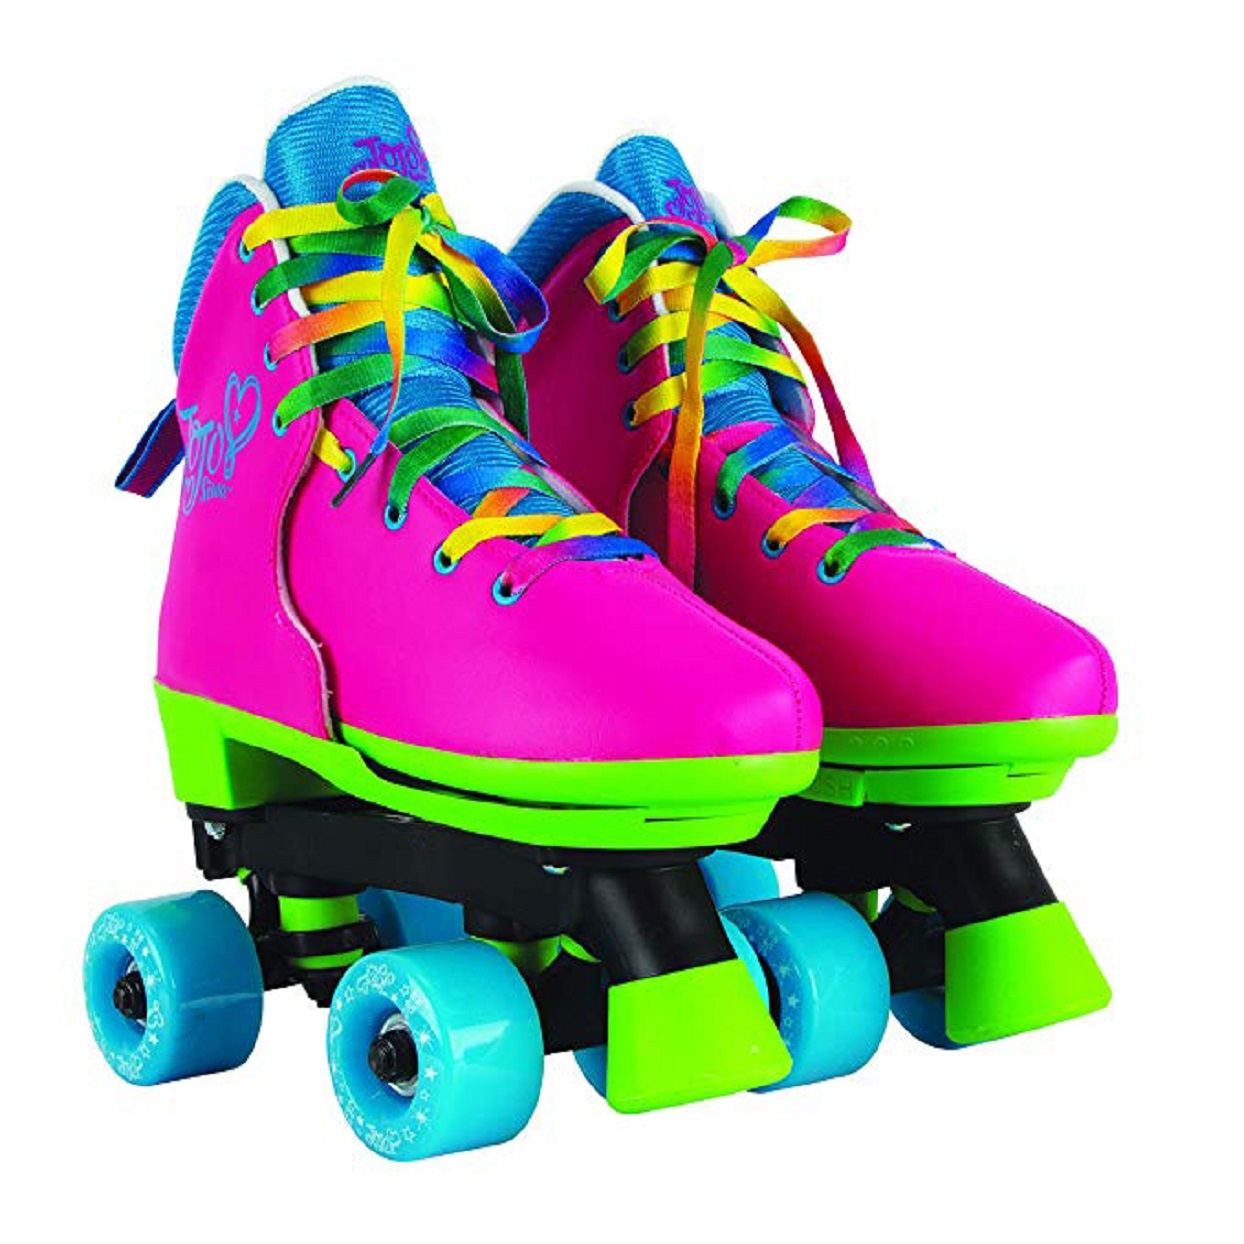 Jojo Siwa Circle Society Classic Adjustable Indoor and Outdoor Childrens Roller Skates Rainbow